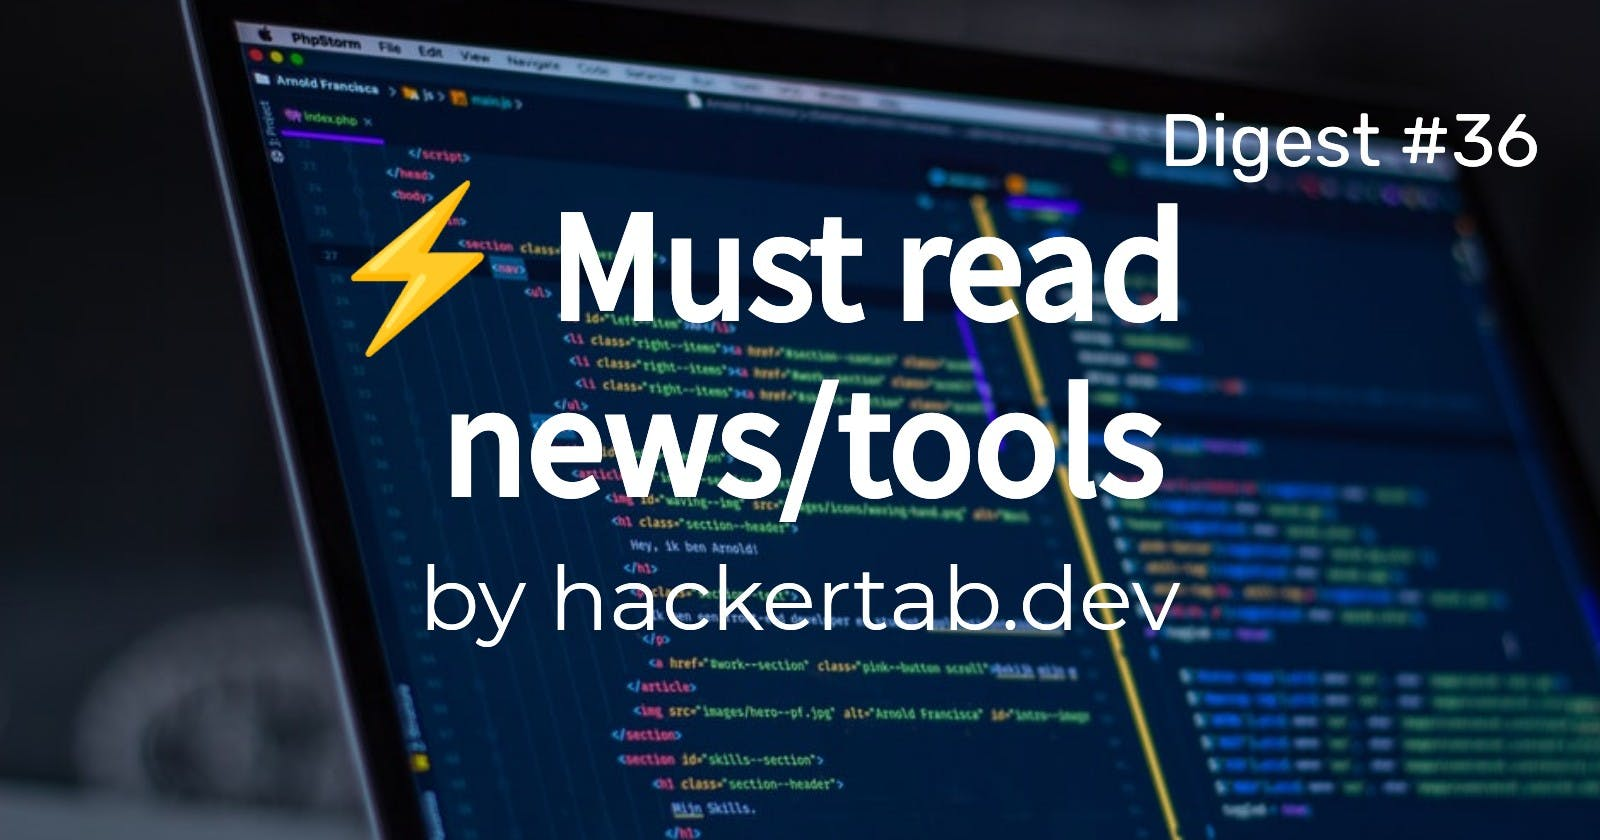 🔥 Trending News, Repos and Products of the day - Digest #36